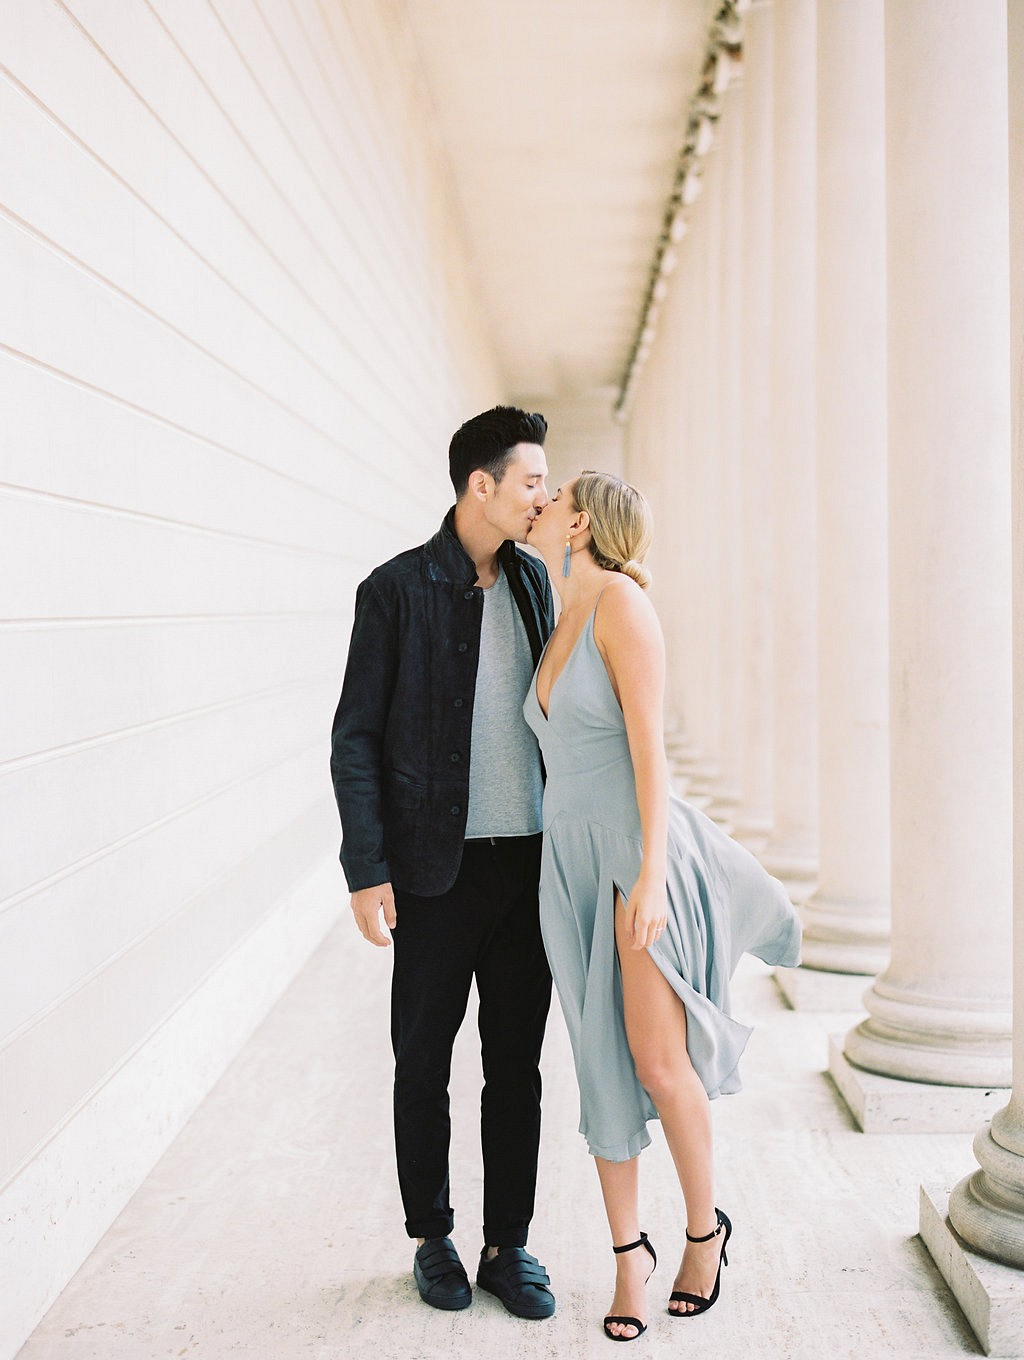 Lauren and Colin's Modern Engagement Session